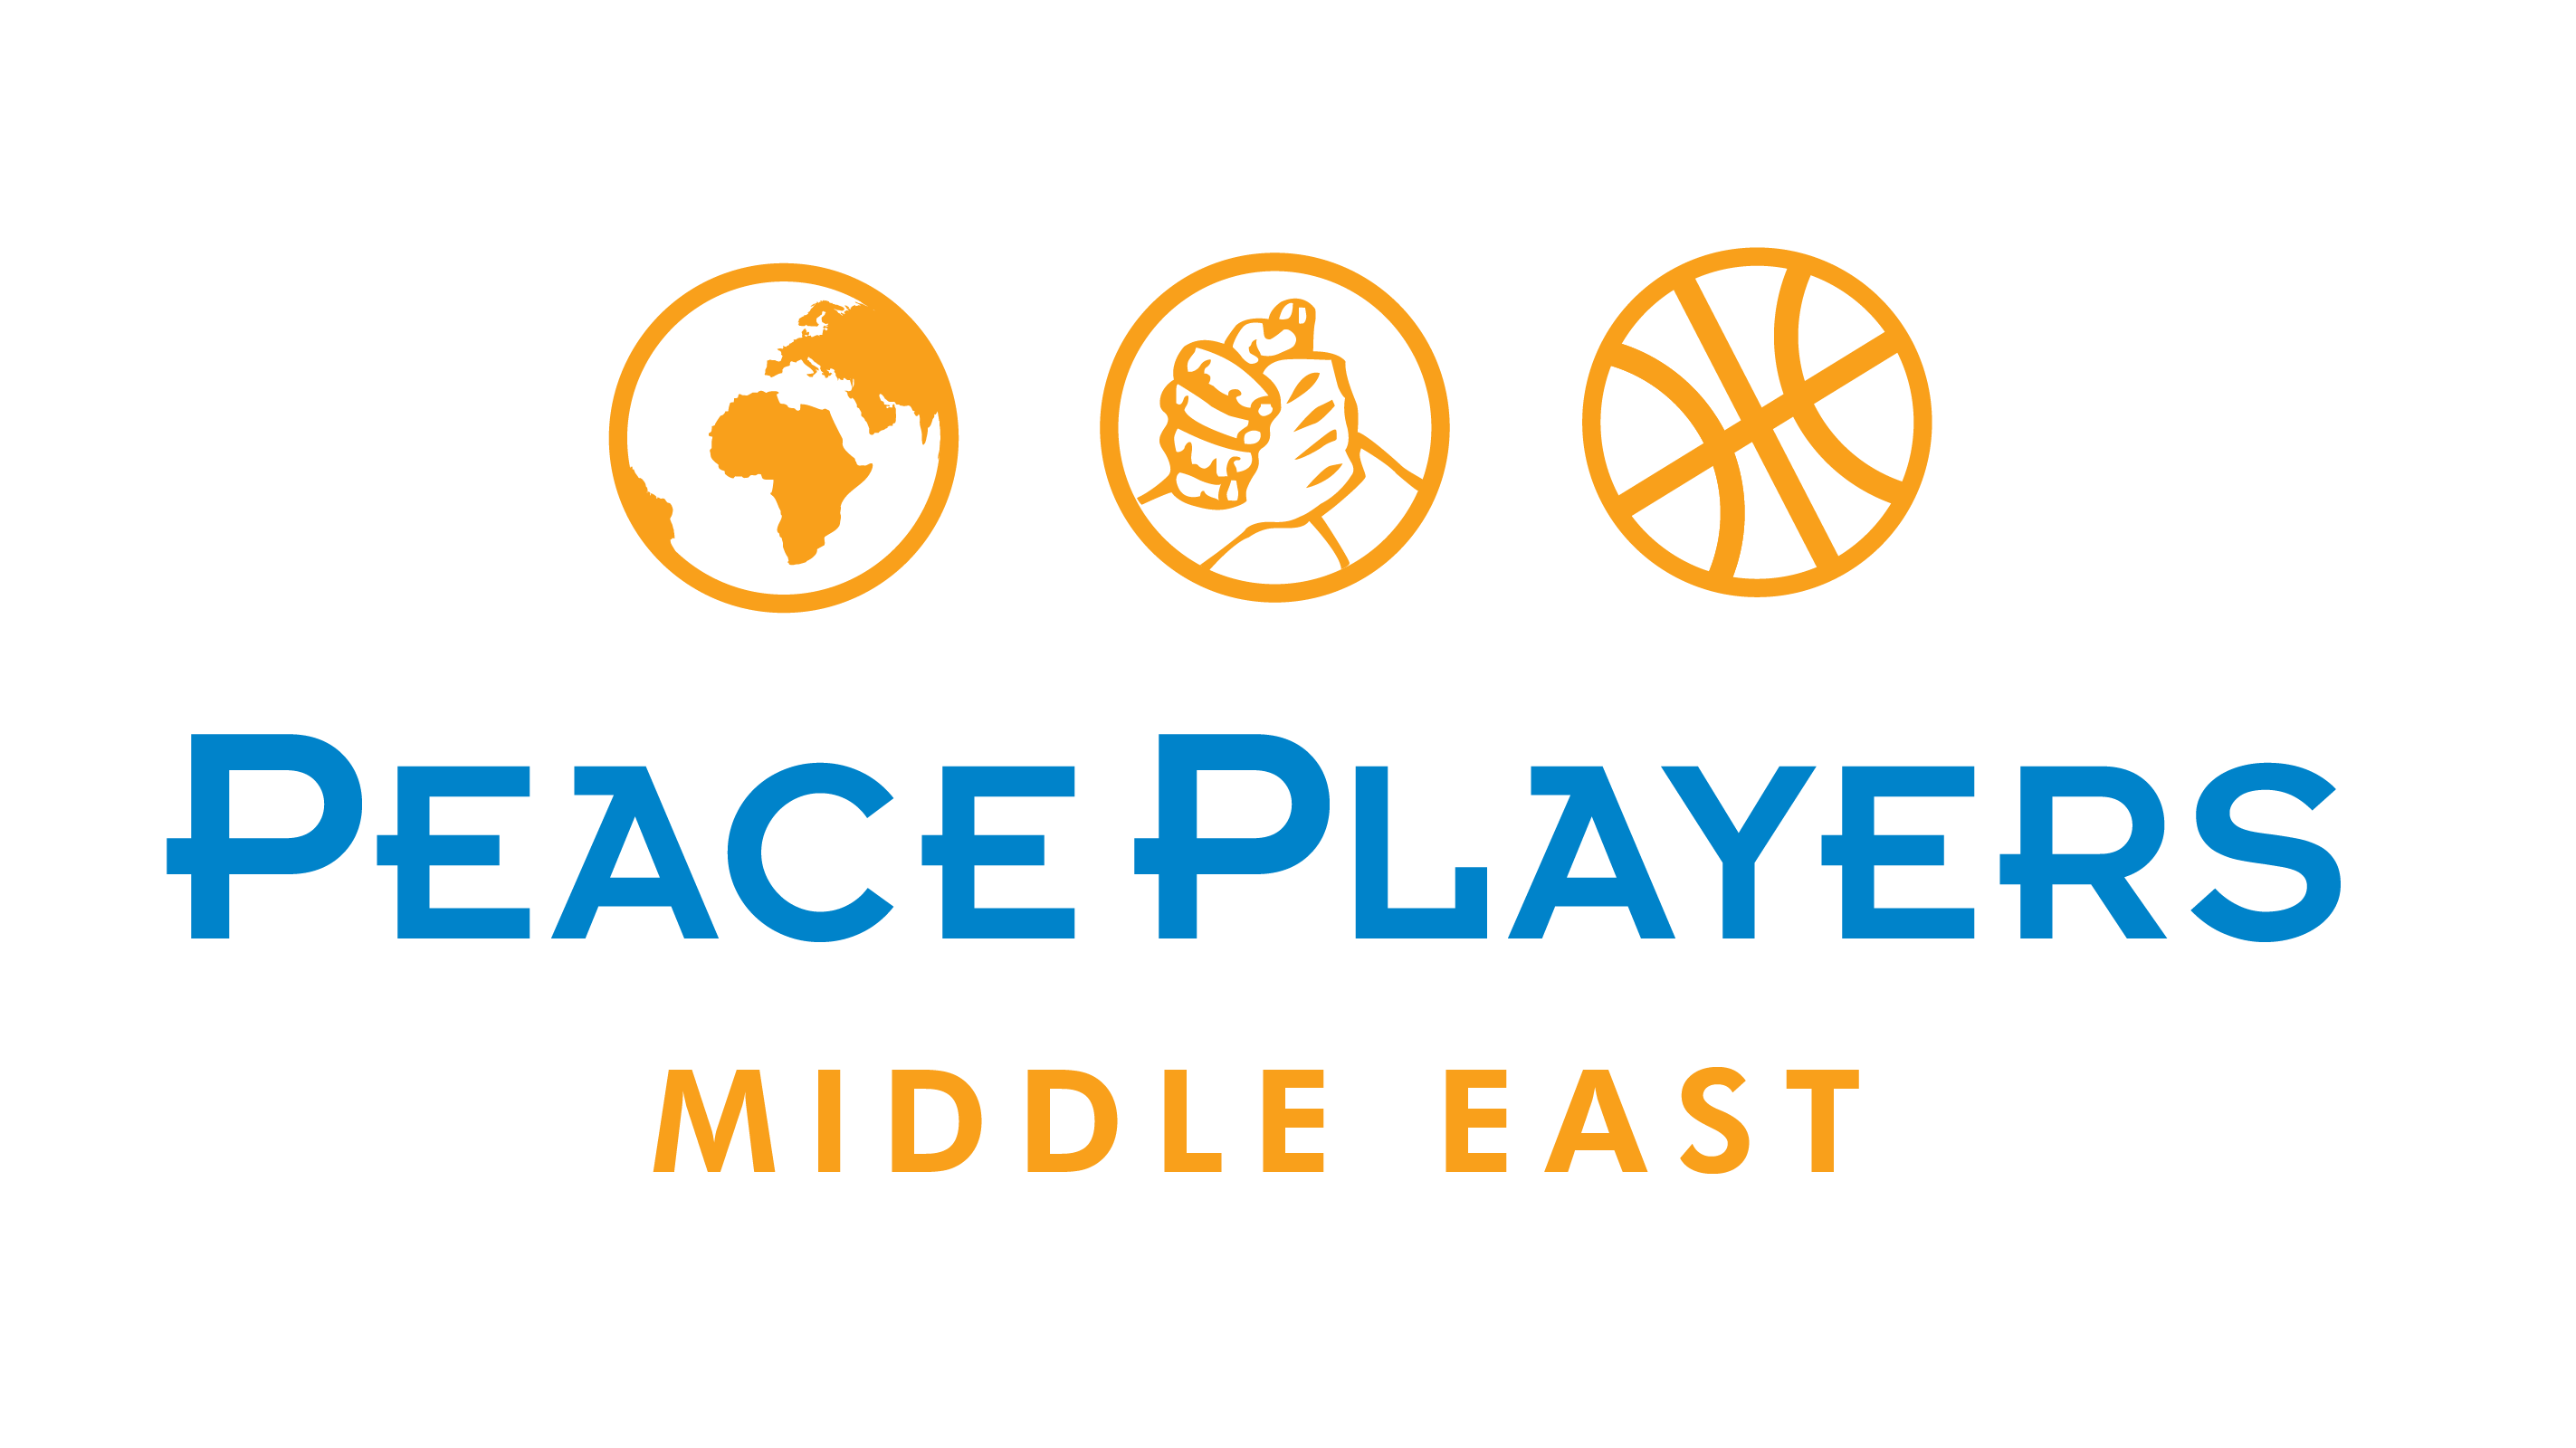 PeacePlayers Middle East Logo